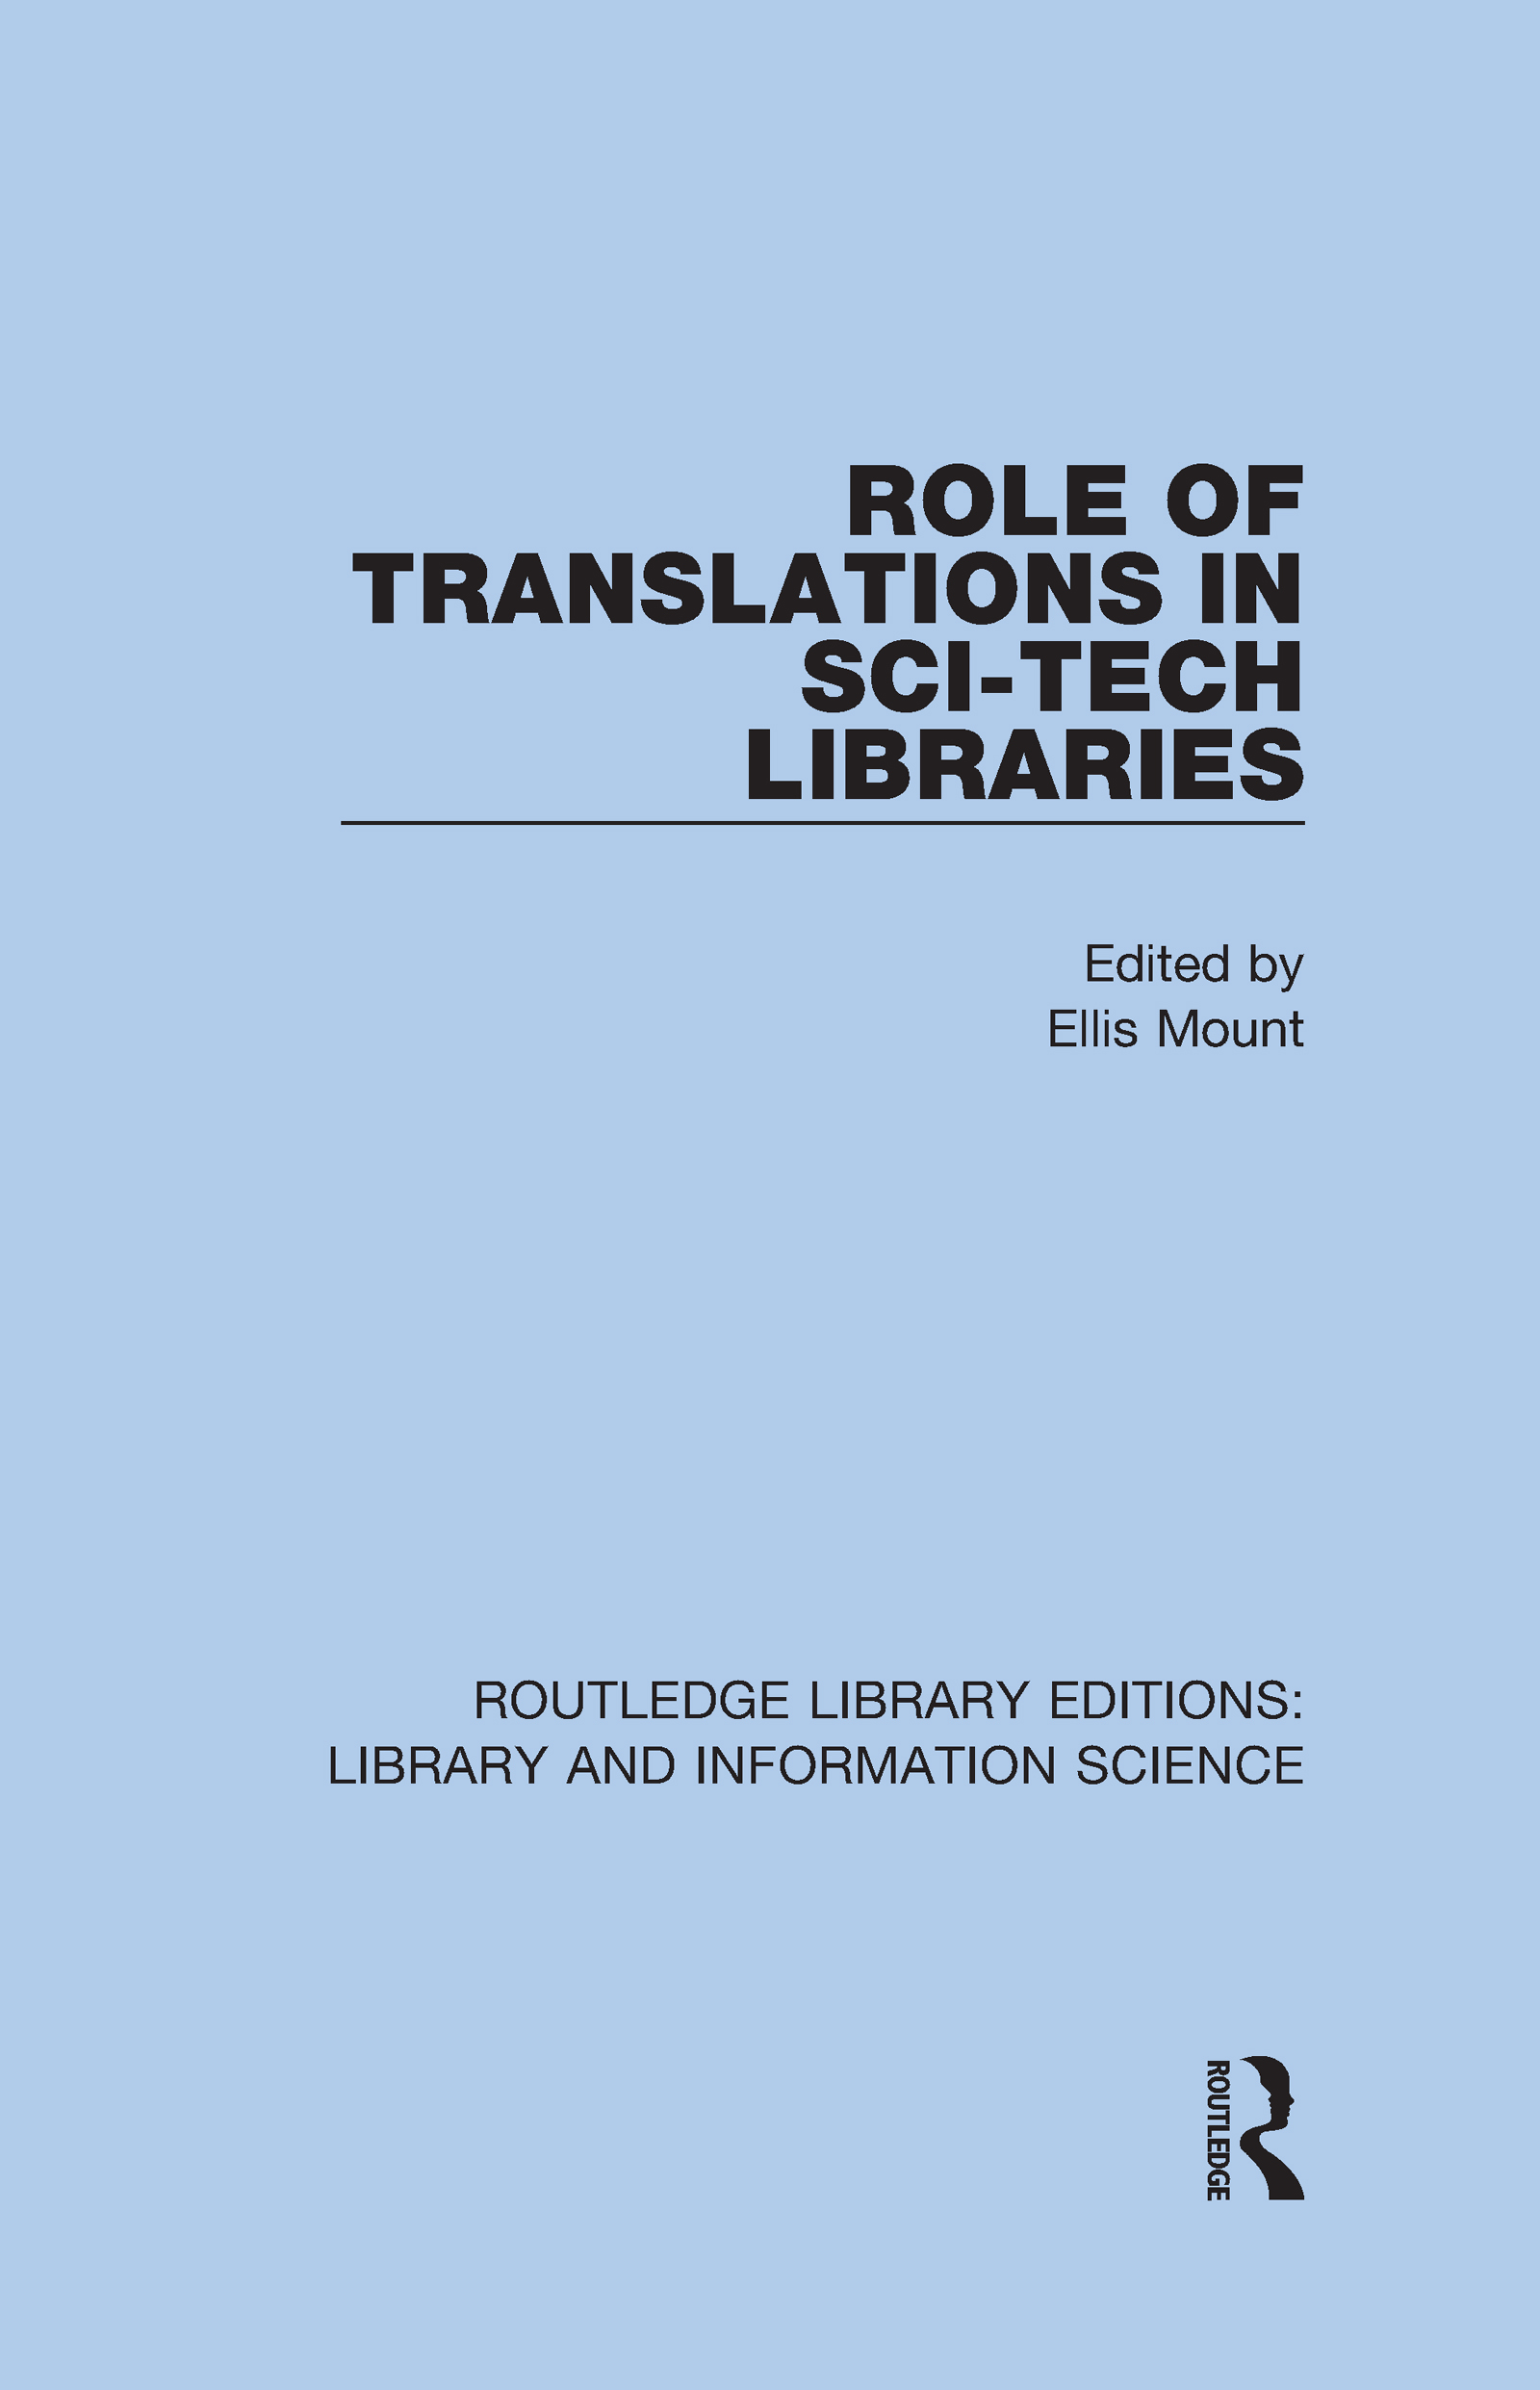 Role of Translations in Sci-Tech Libraries